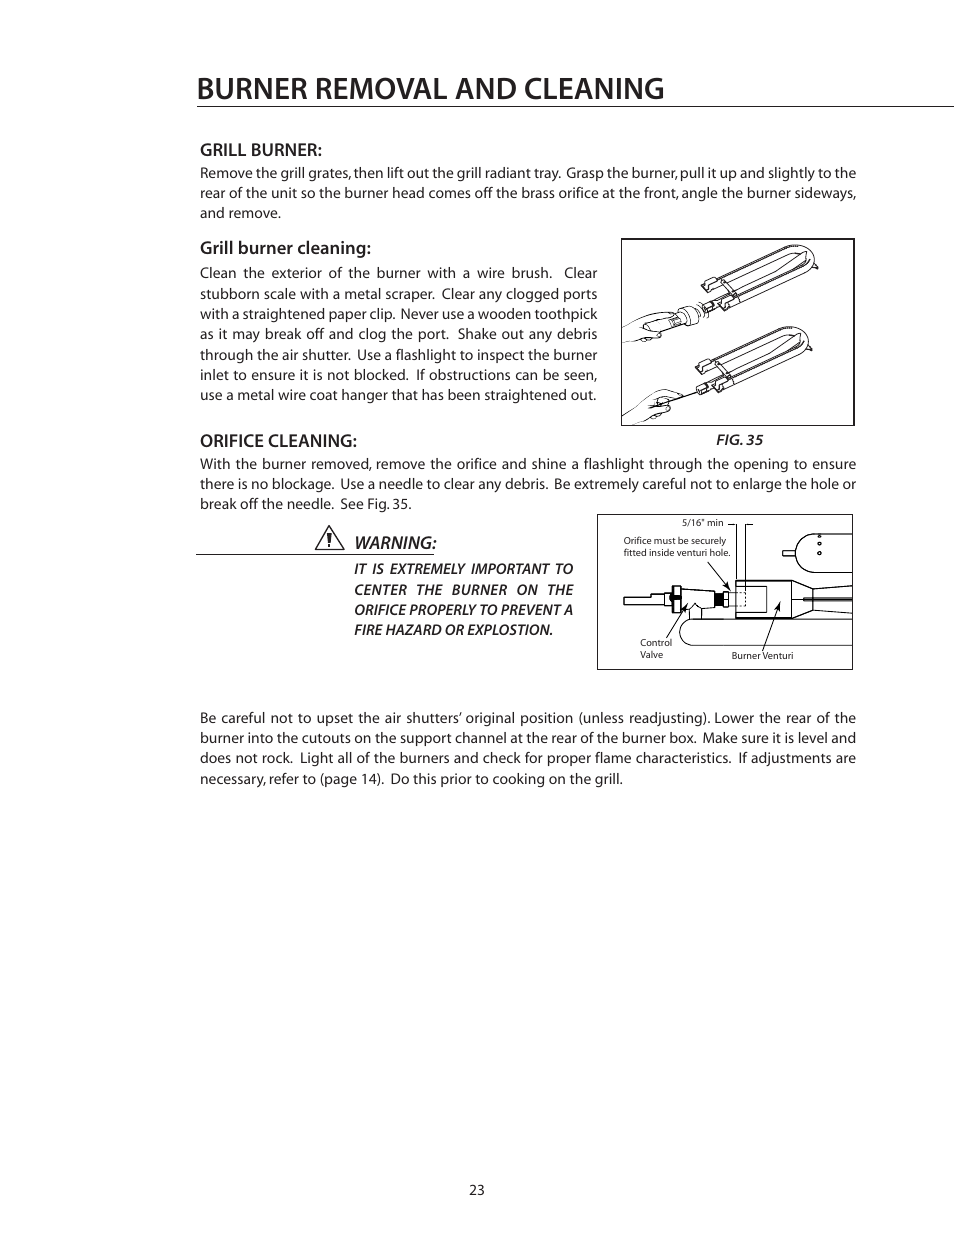 Burner removal and cleaning   DCS BGB30-BQR User Manual   Page 24